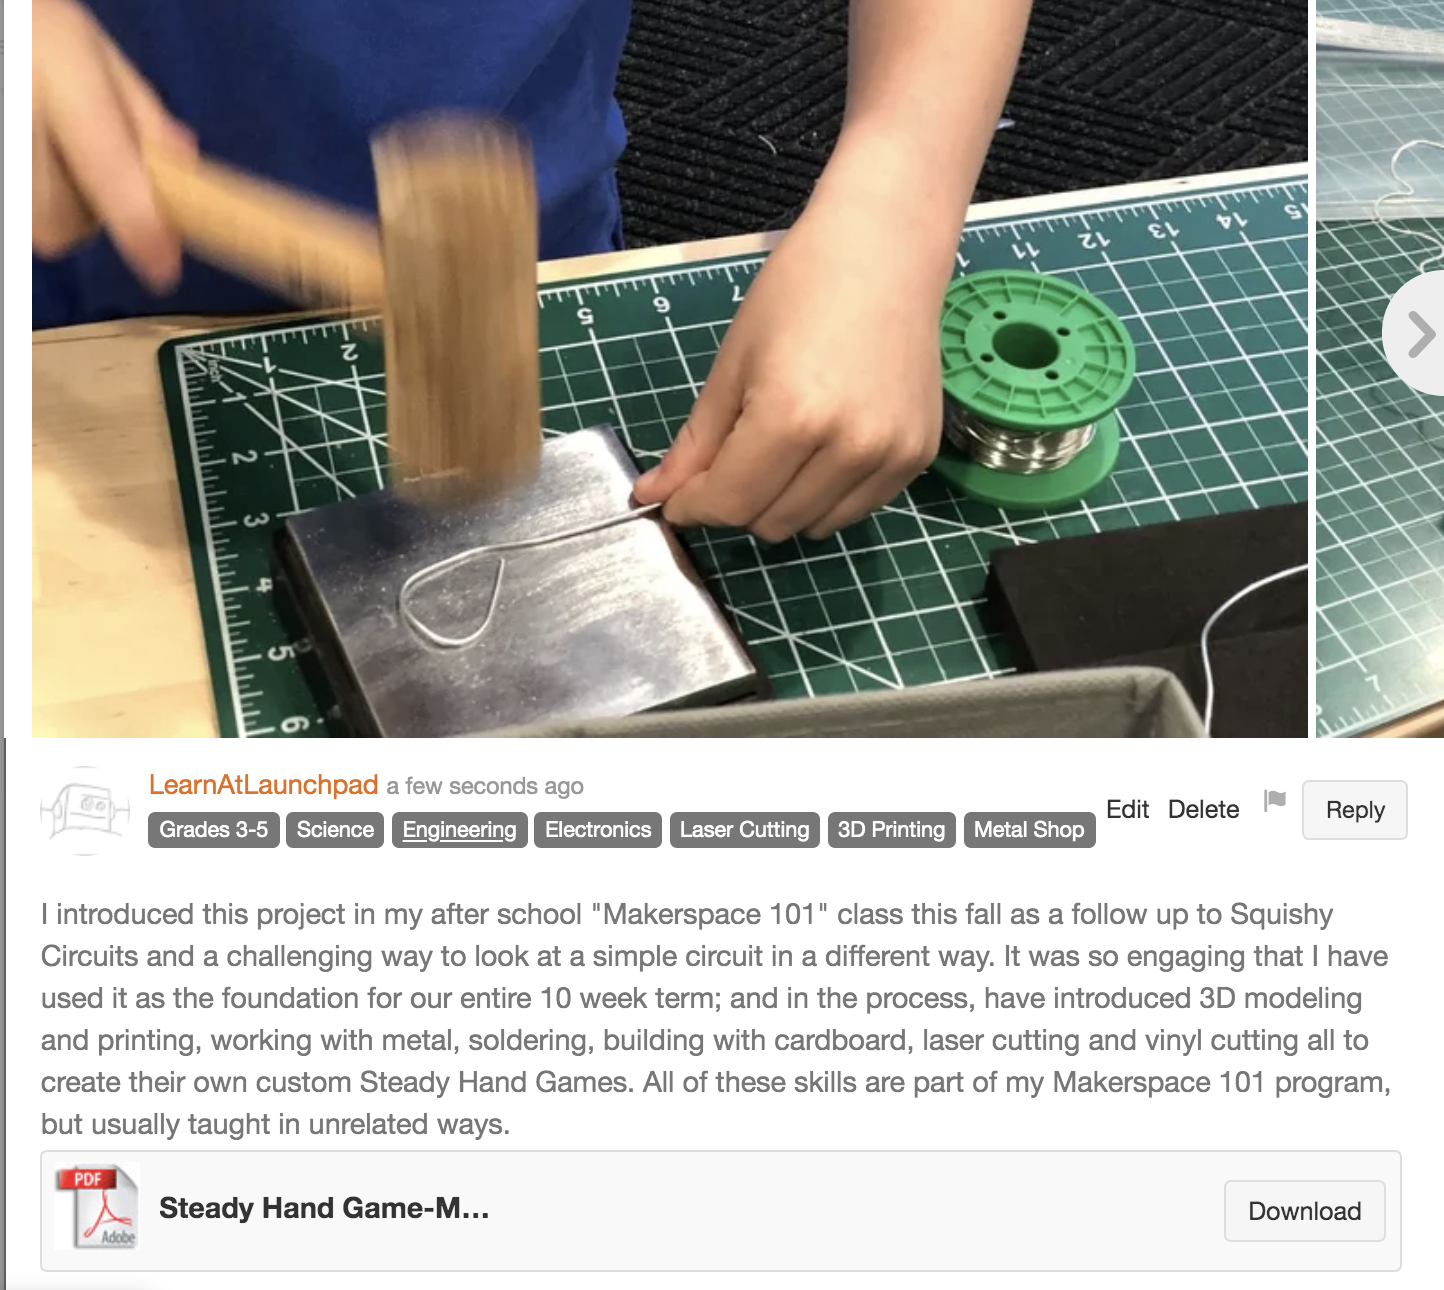 Using a Steady Hand Game for a Makerspace Unit